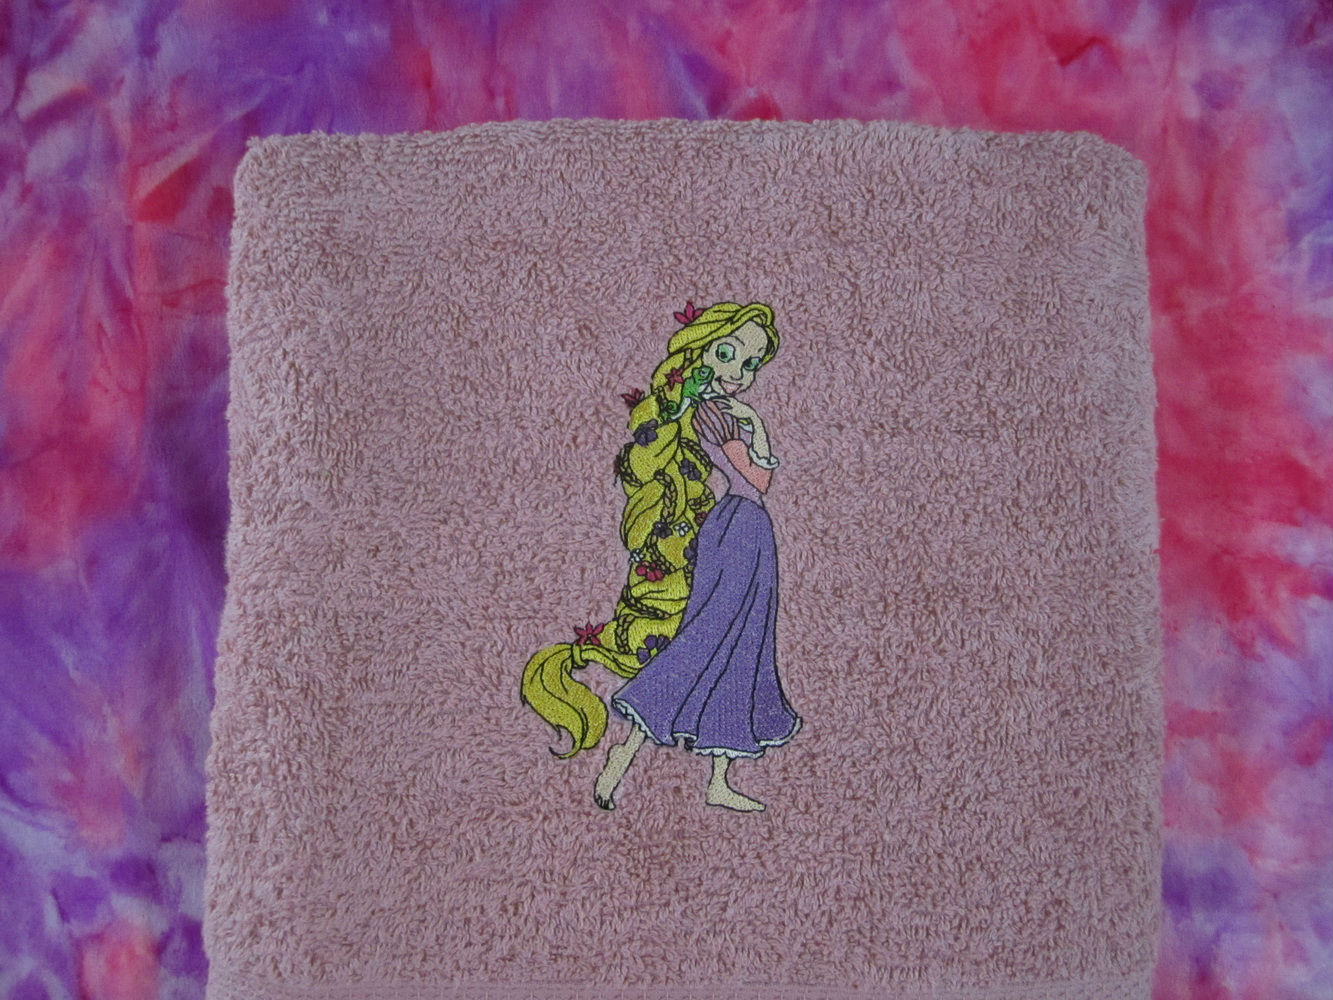 Tangled Beautiful design on towel embroidered